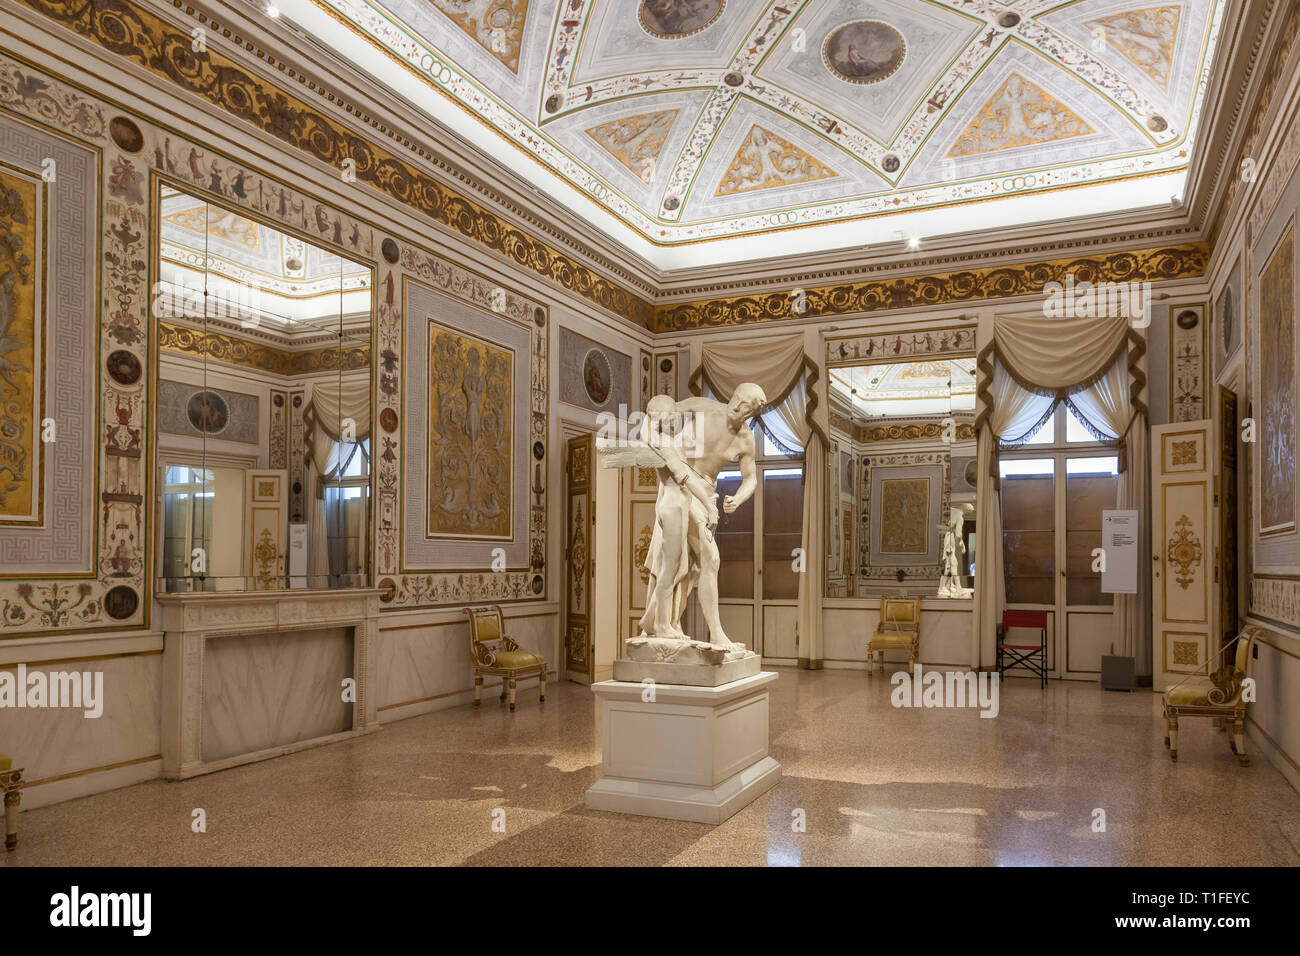 Throne Room in the Correr Museum, Museo Correr,  with  1779 statue of Daedalus and Icarus by Antonio Canova in Neoclassic style , Venice, Veneto, Ital - Stock Image